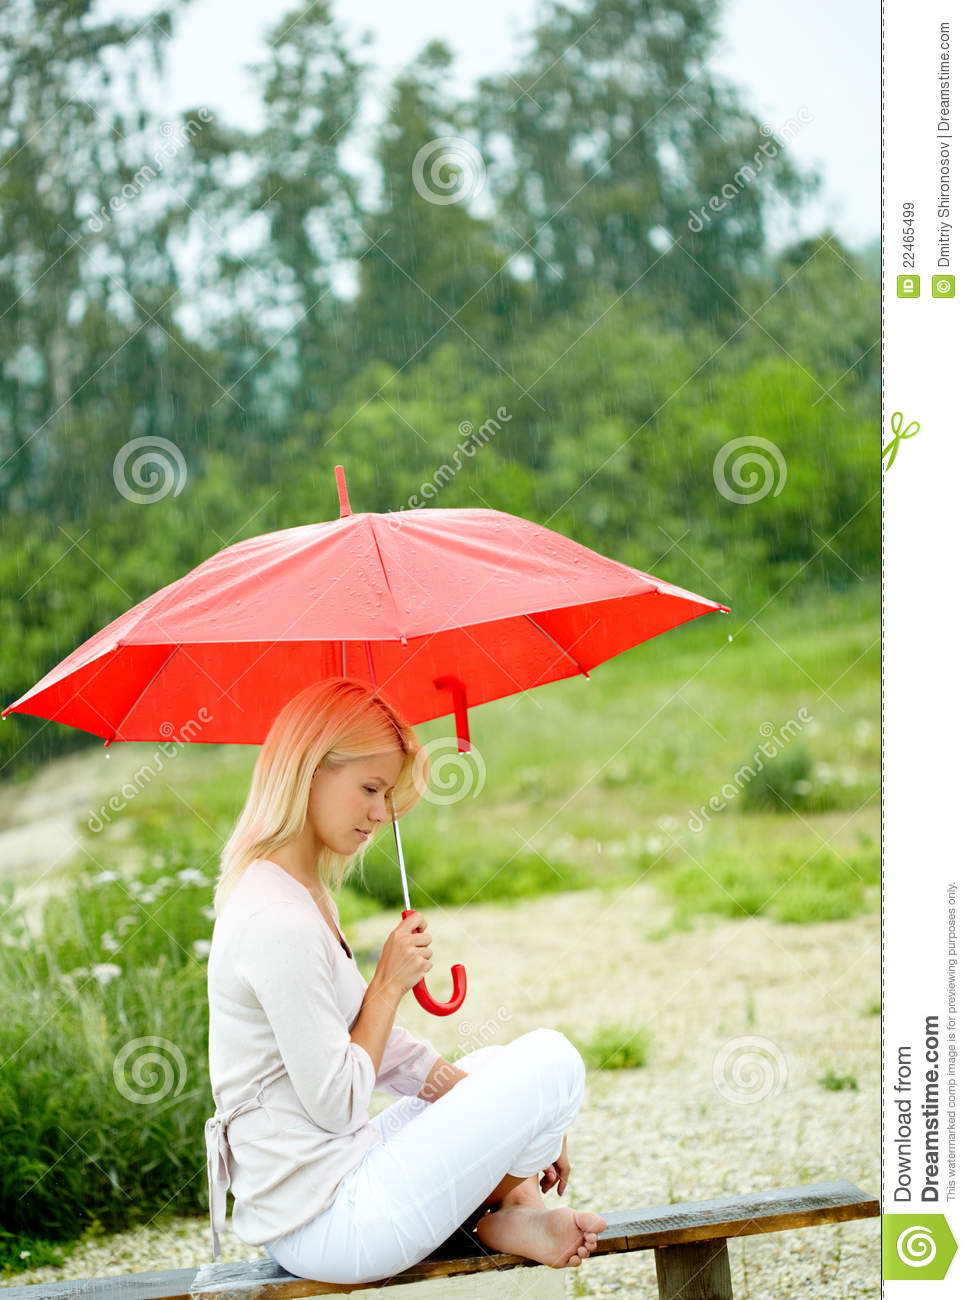 Girl Under Umbrella Royalty Free Stock Images - Image ...